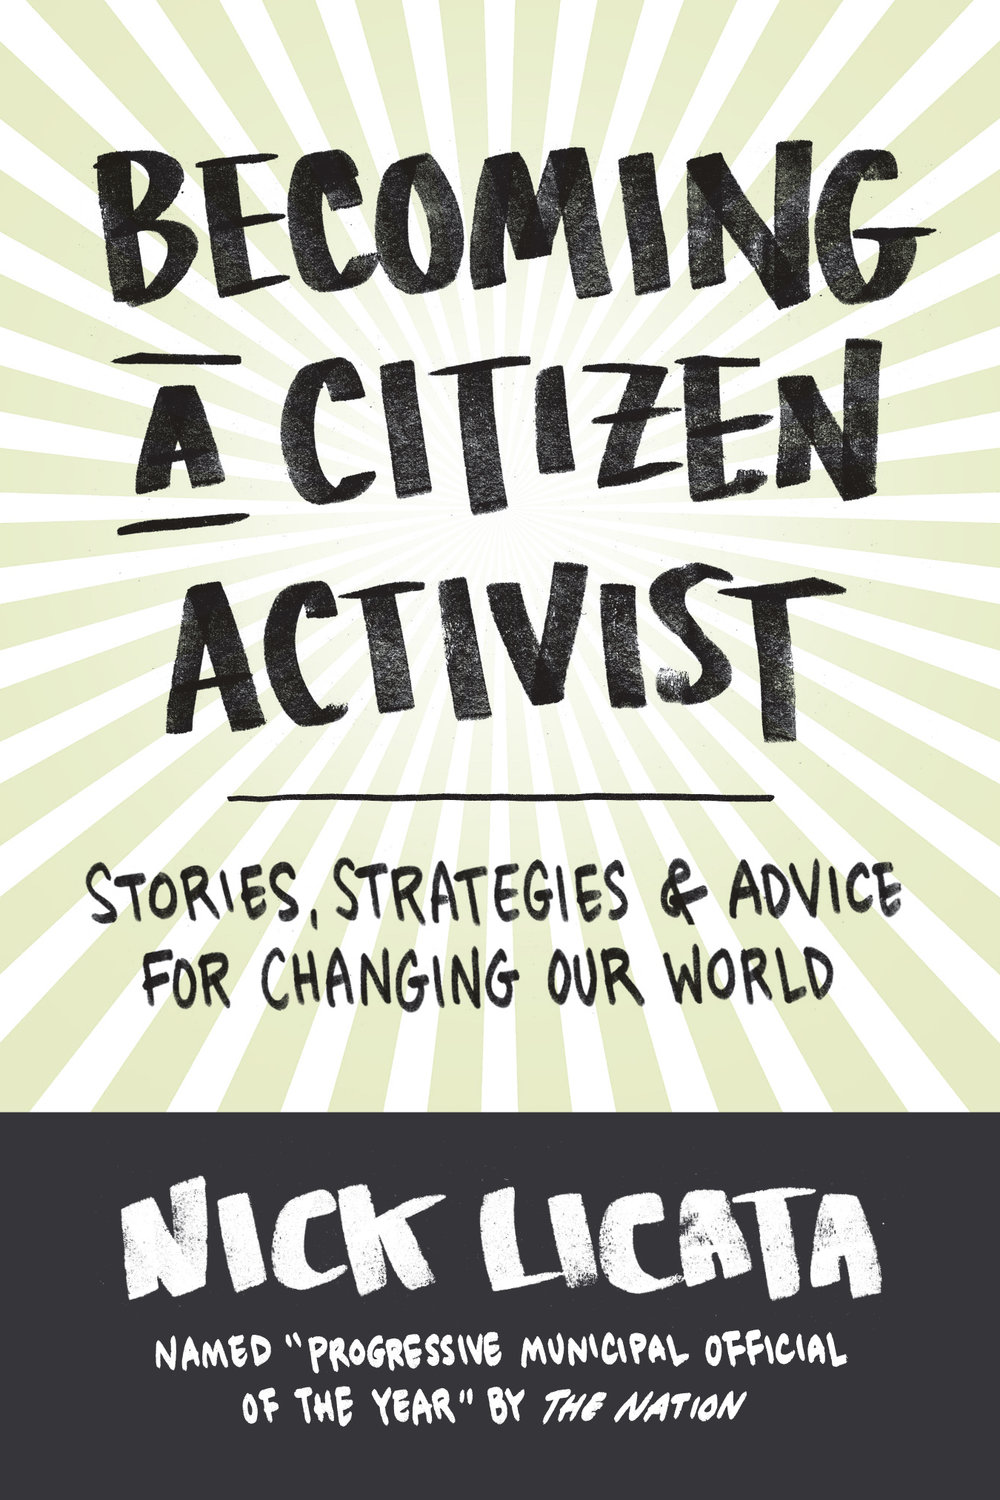 Nick Licata, Becoming a Citizen Activist  Hometown hero Nick Licata delved deep into the history of activism and the challenges we face.